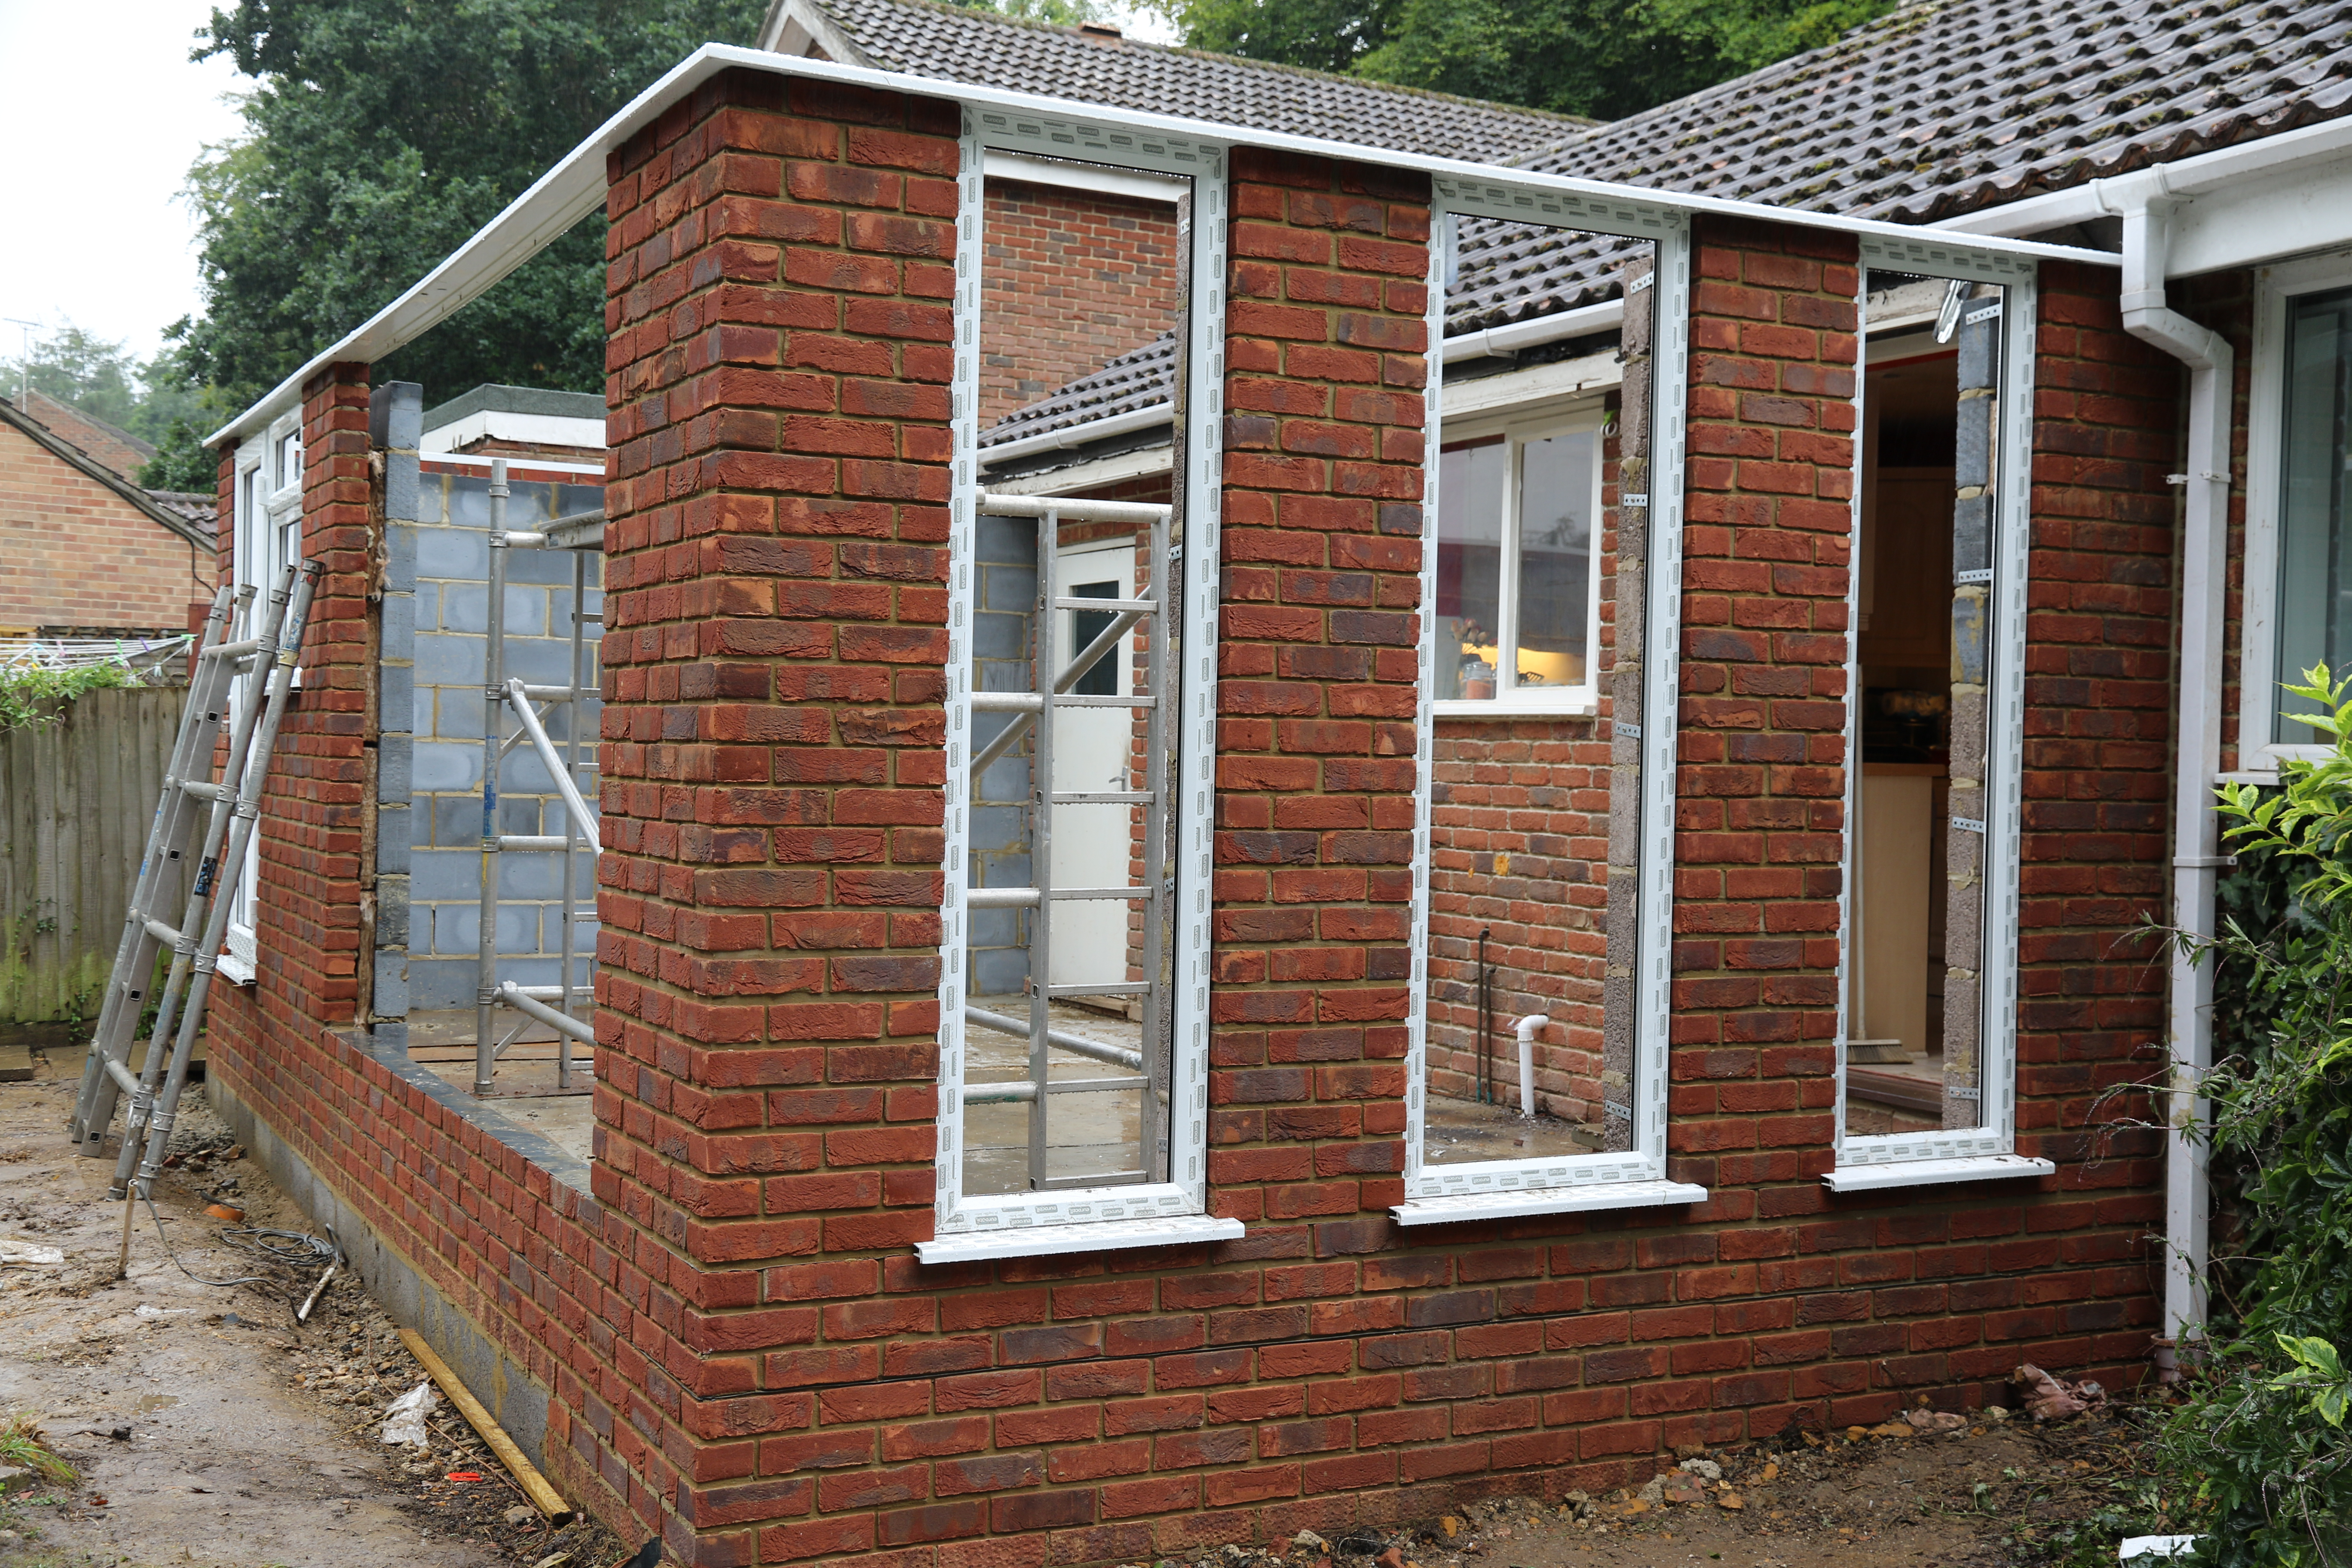 Conservatory - North end window frames are in. External view.